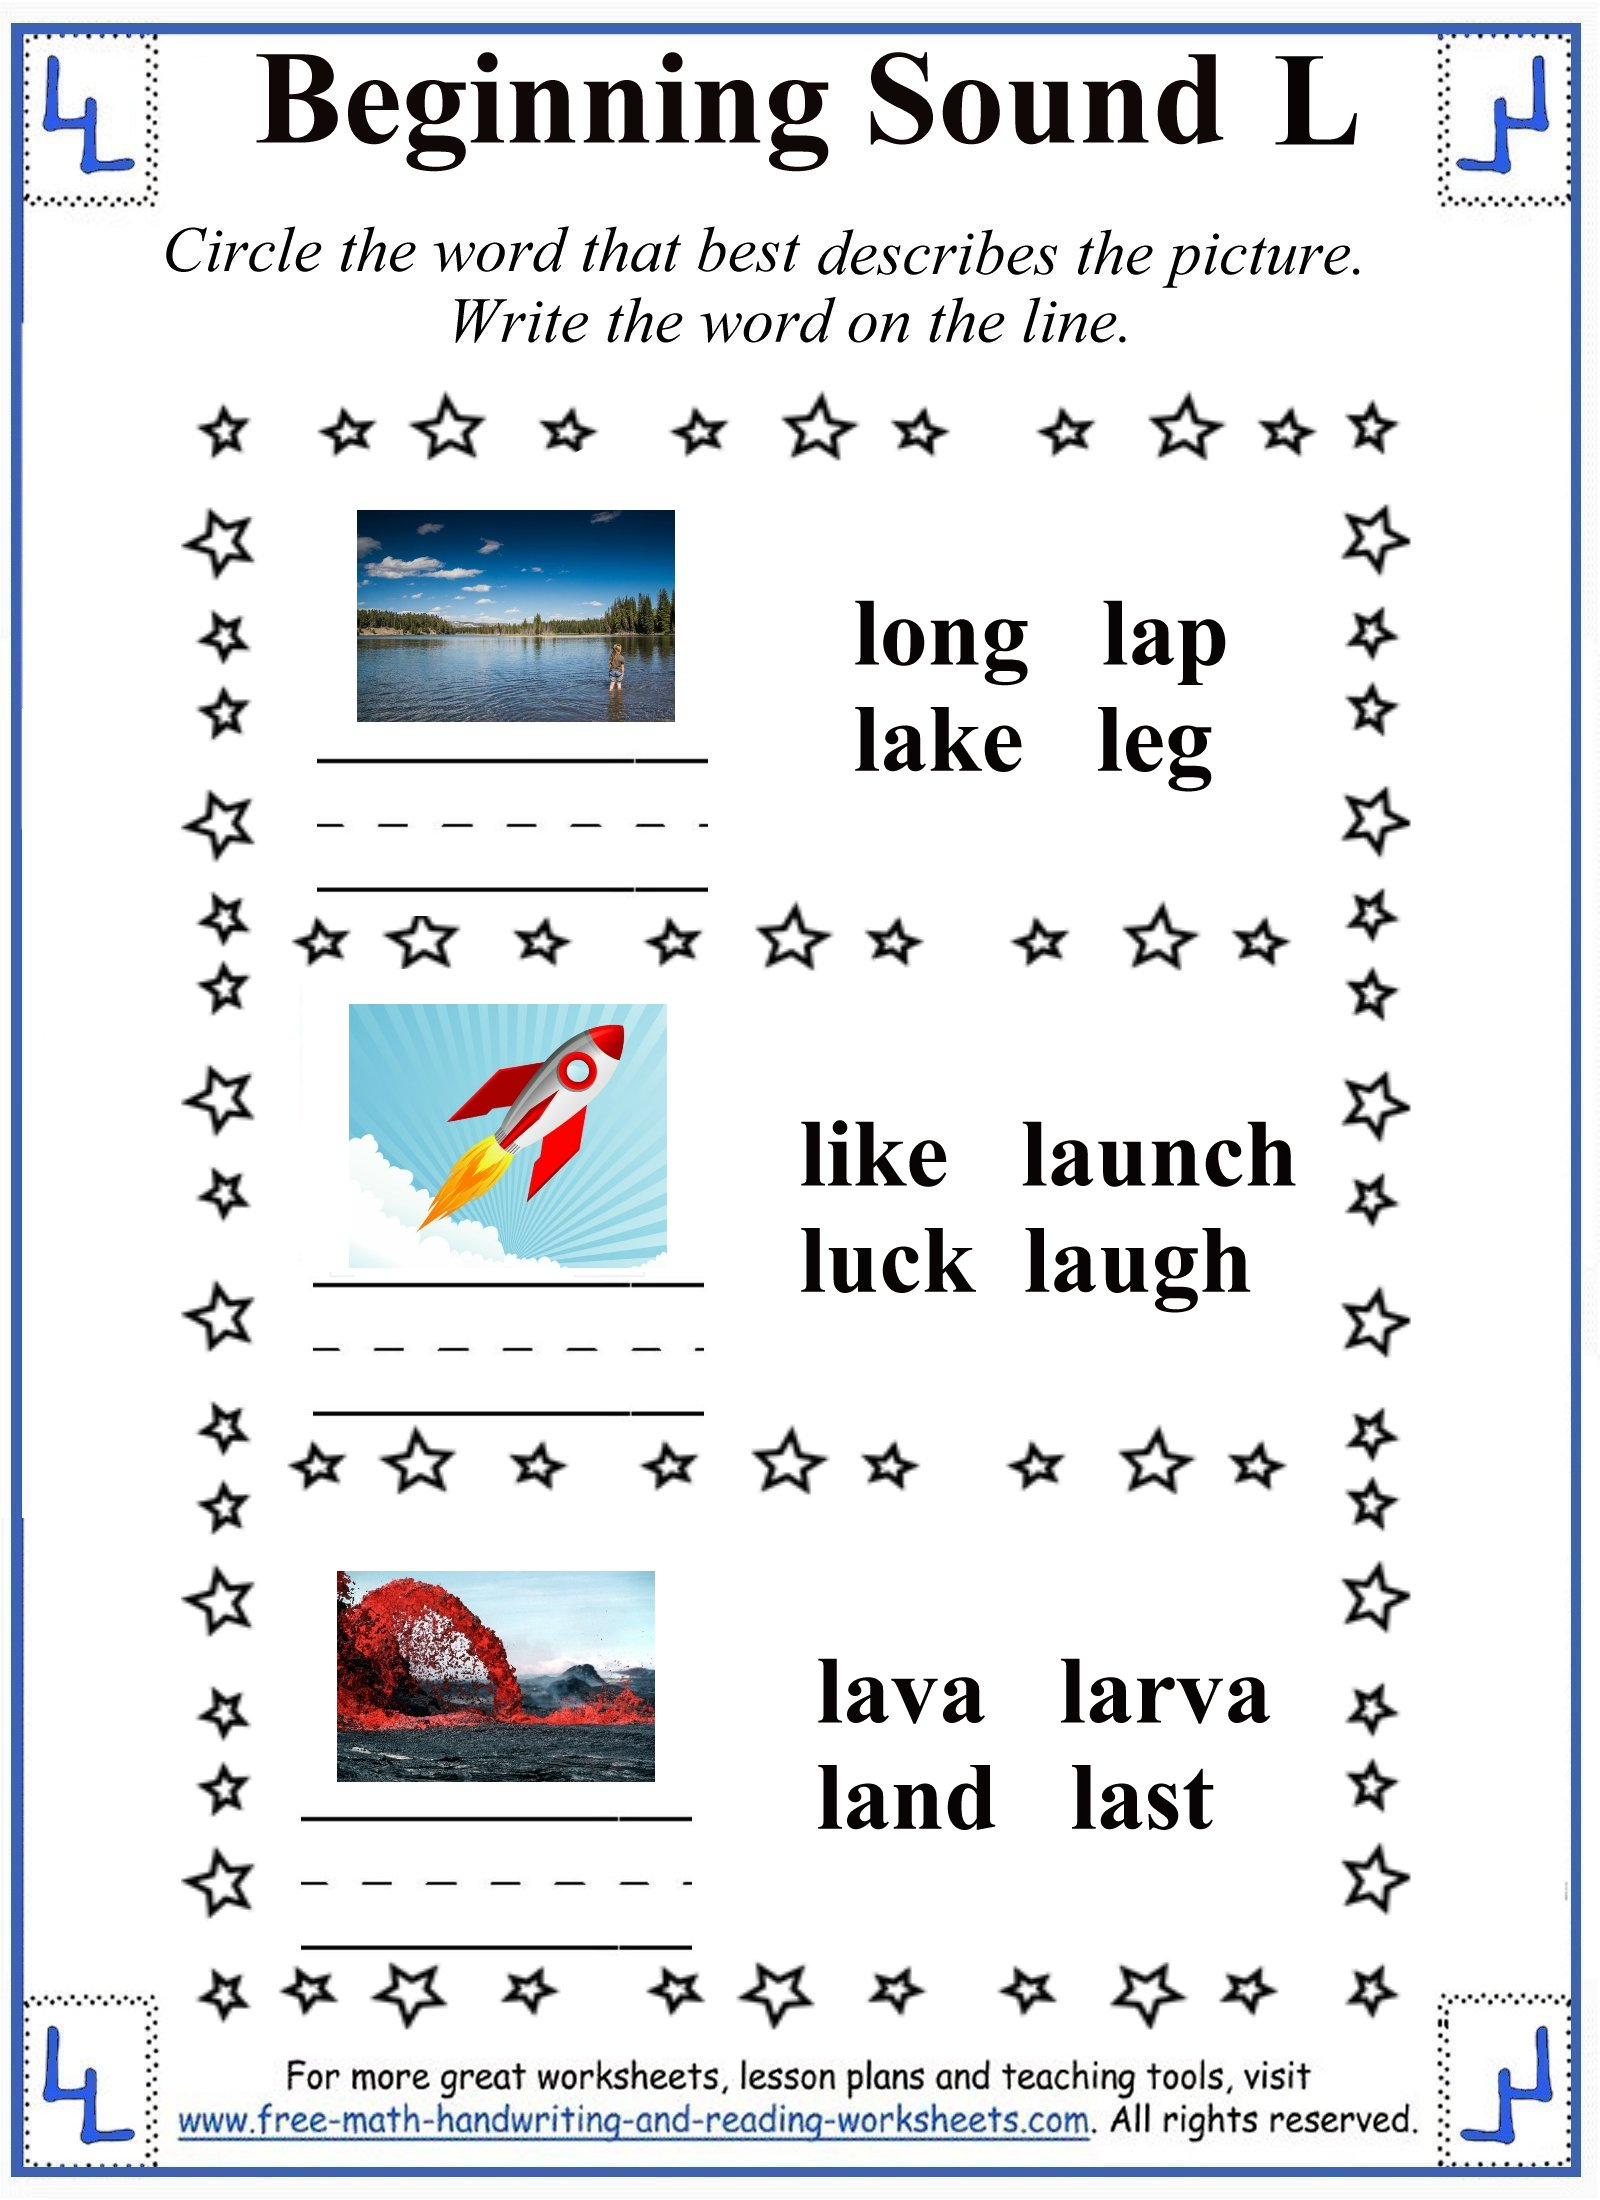 L Letter Worksheets – L Worksheets